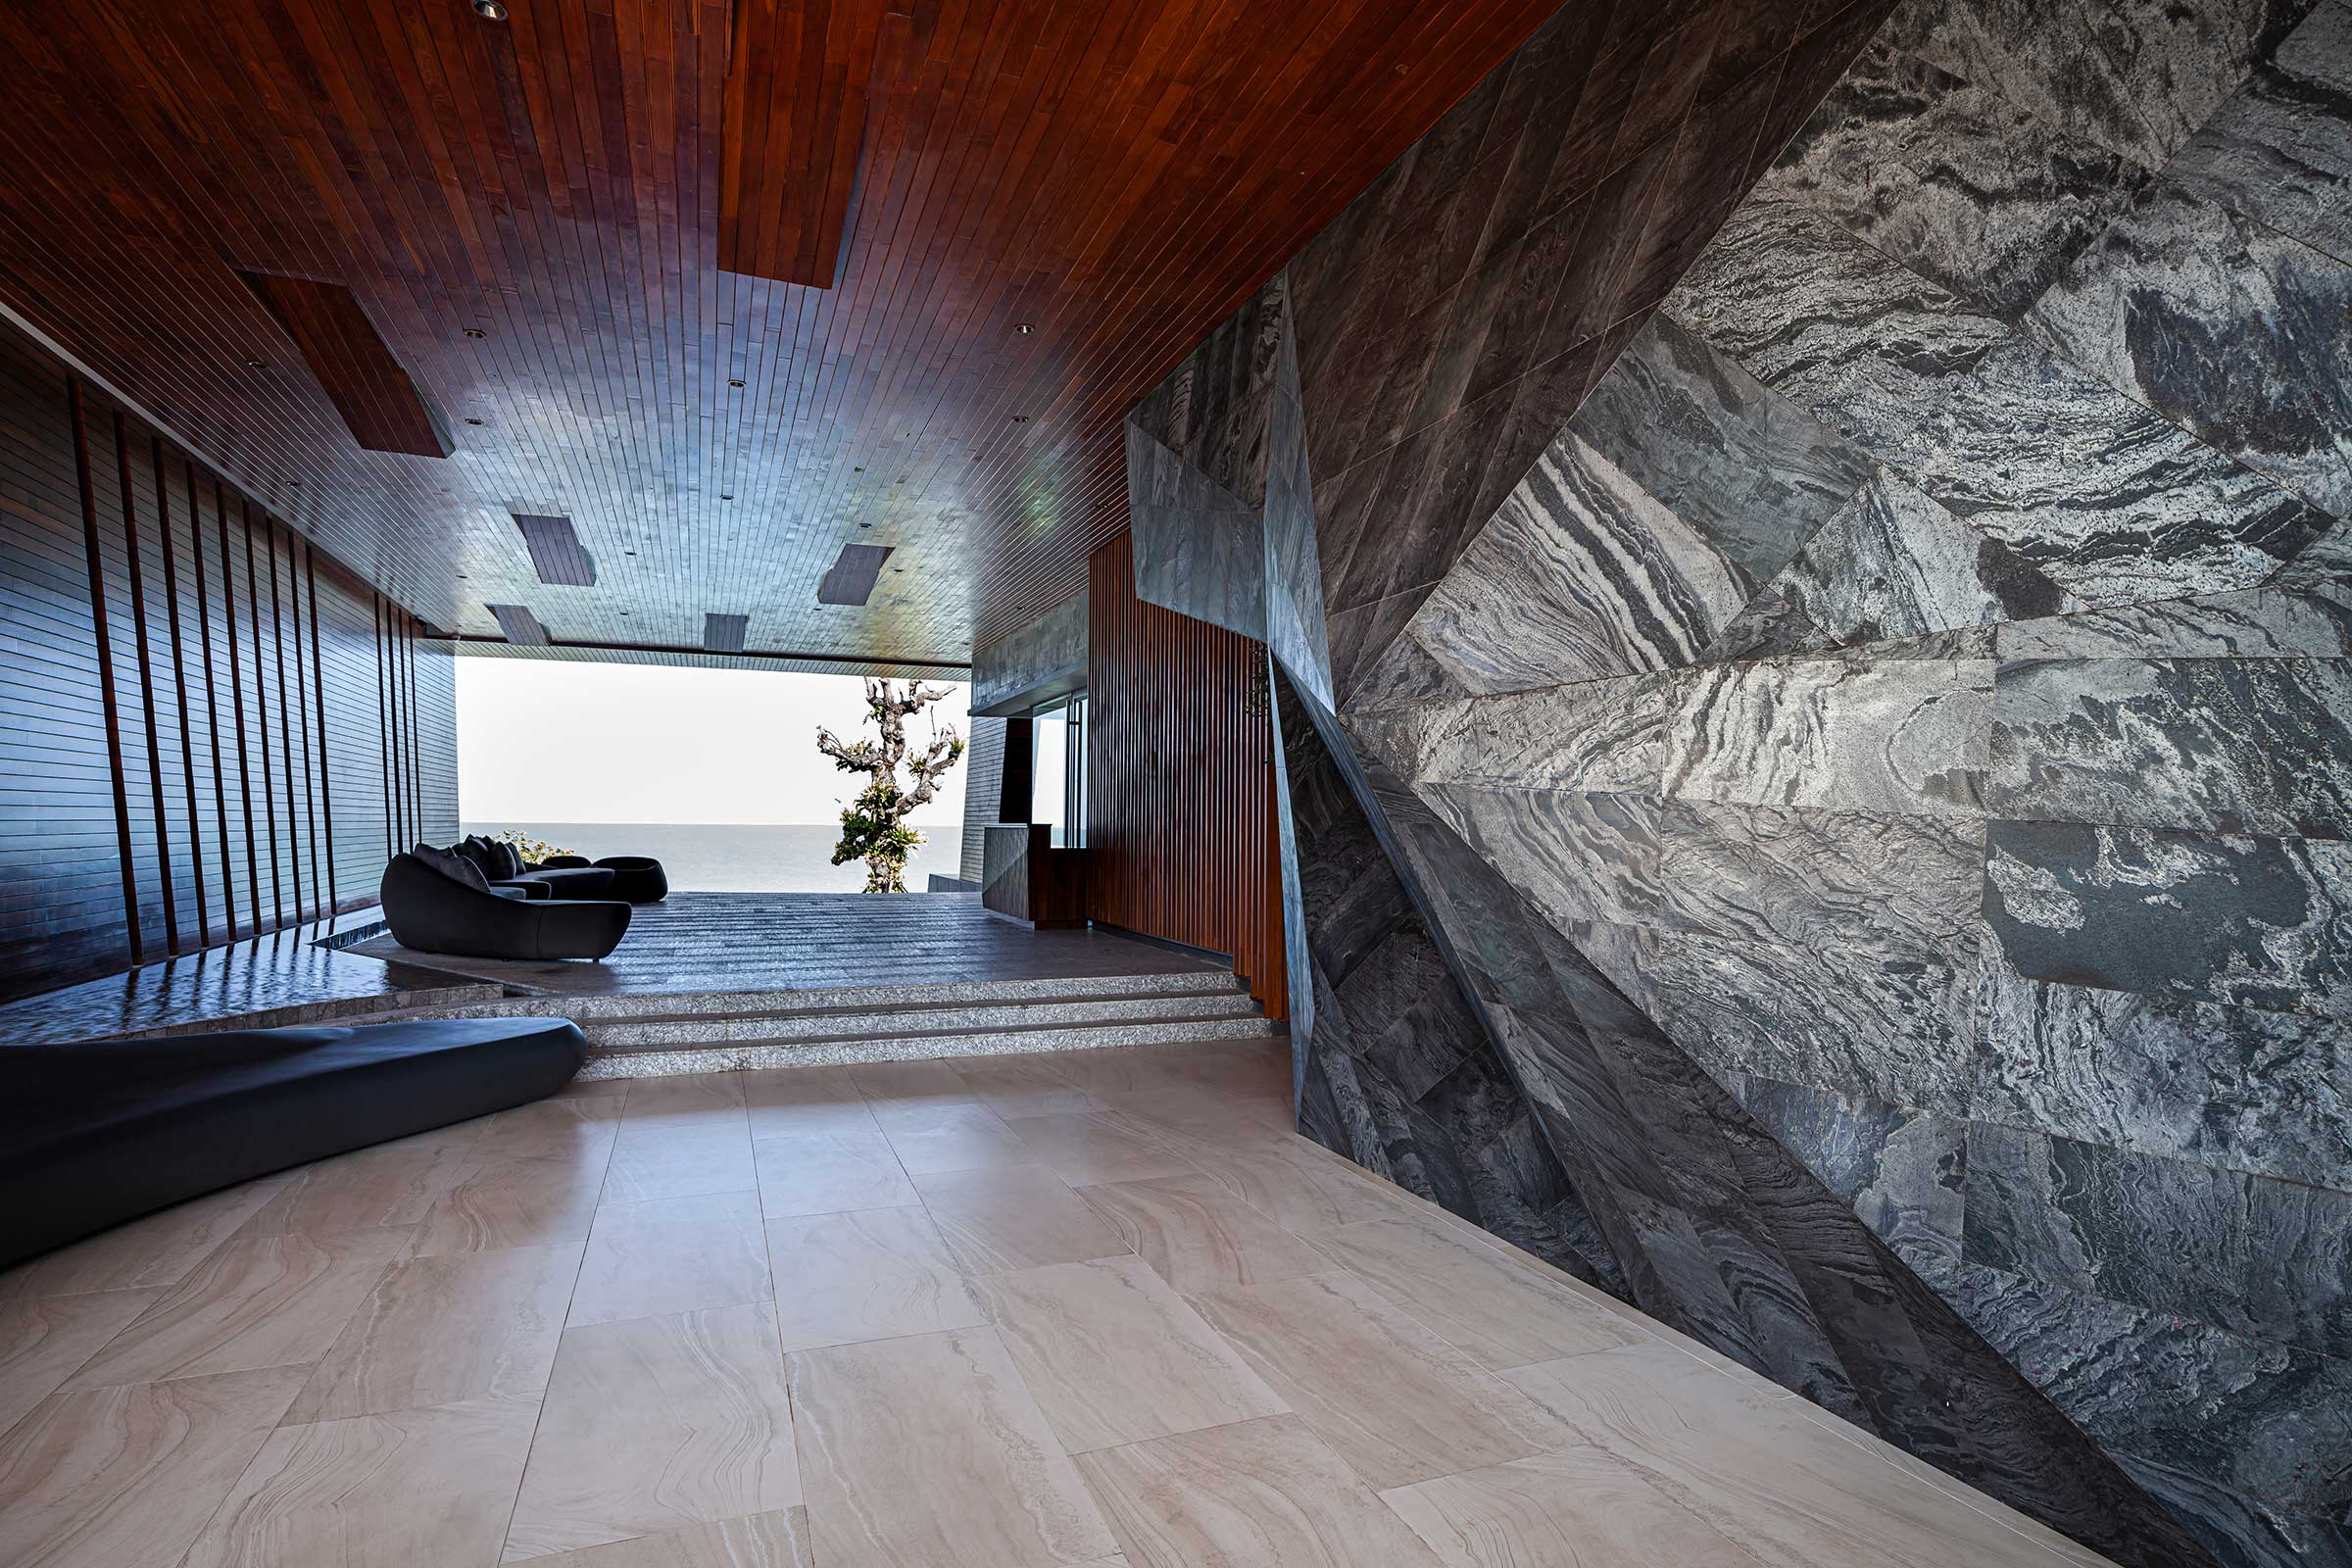 Sculptural-stone-wall-at-the-receptive-tunnel-lobby-space.jpg